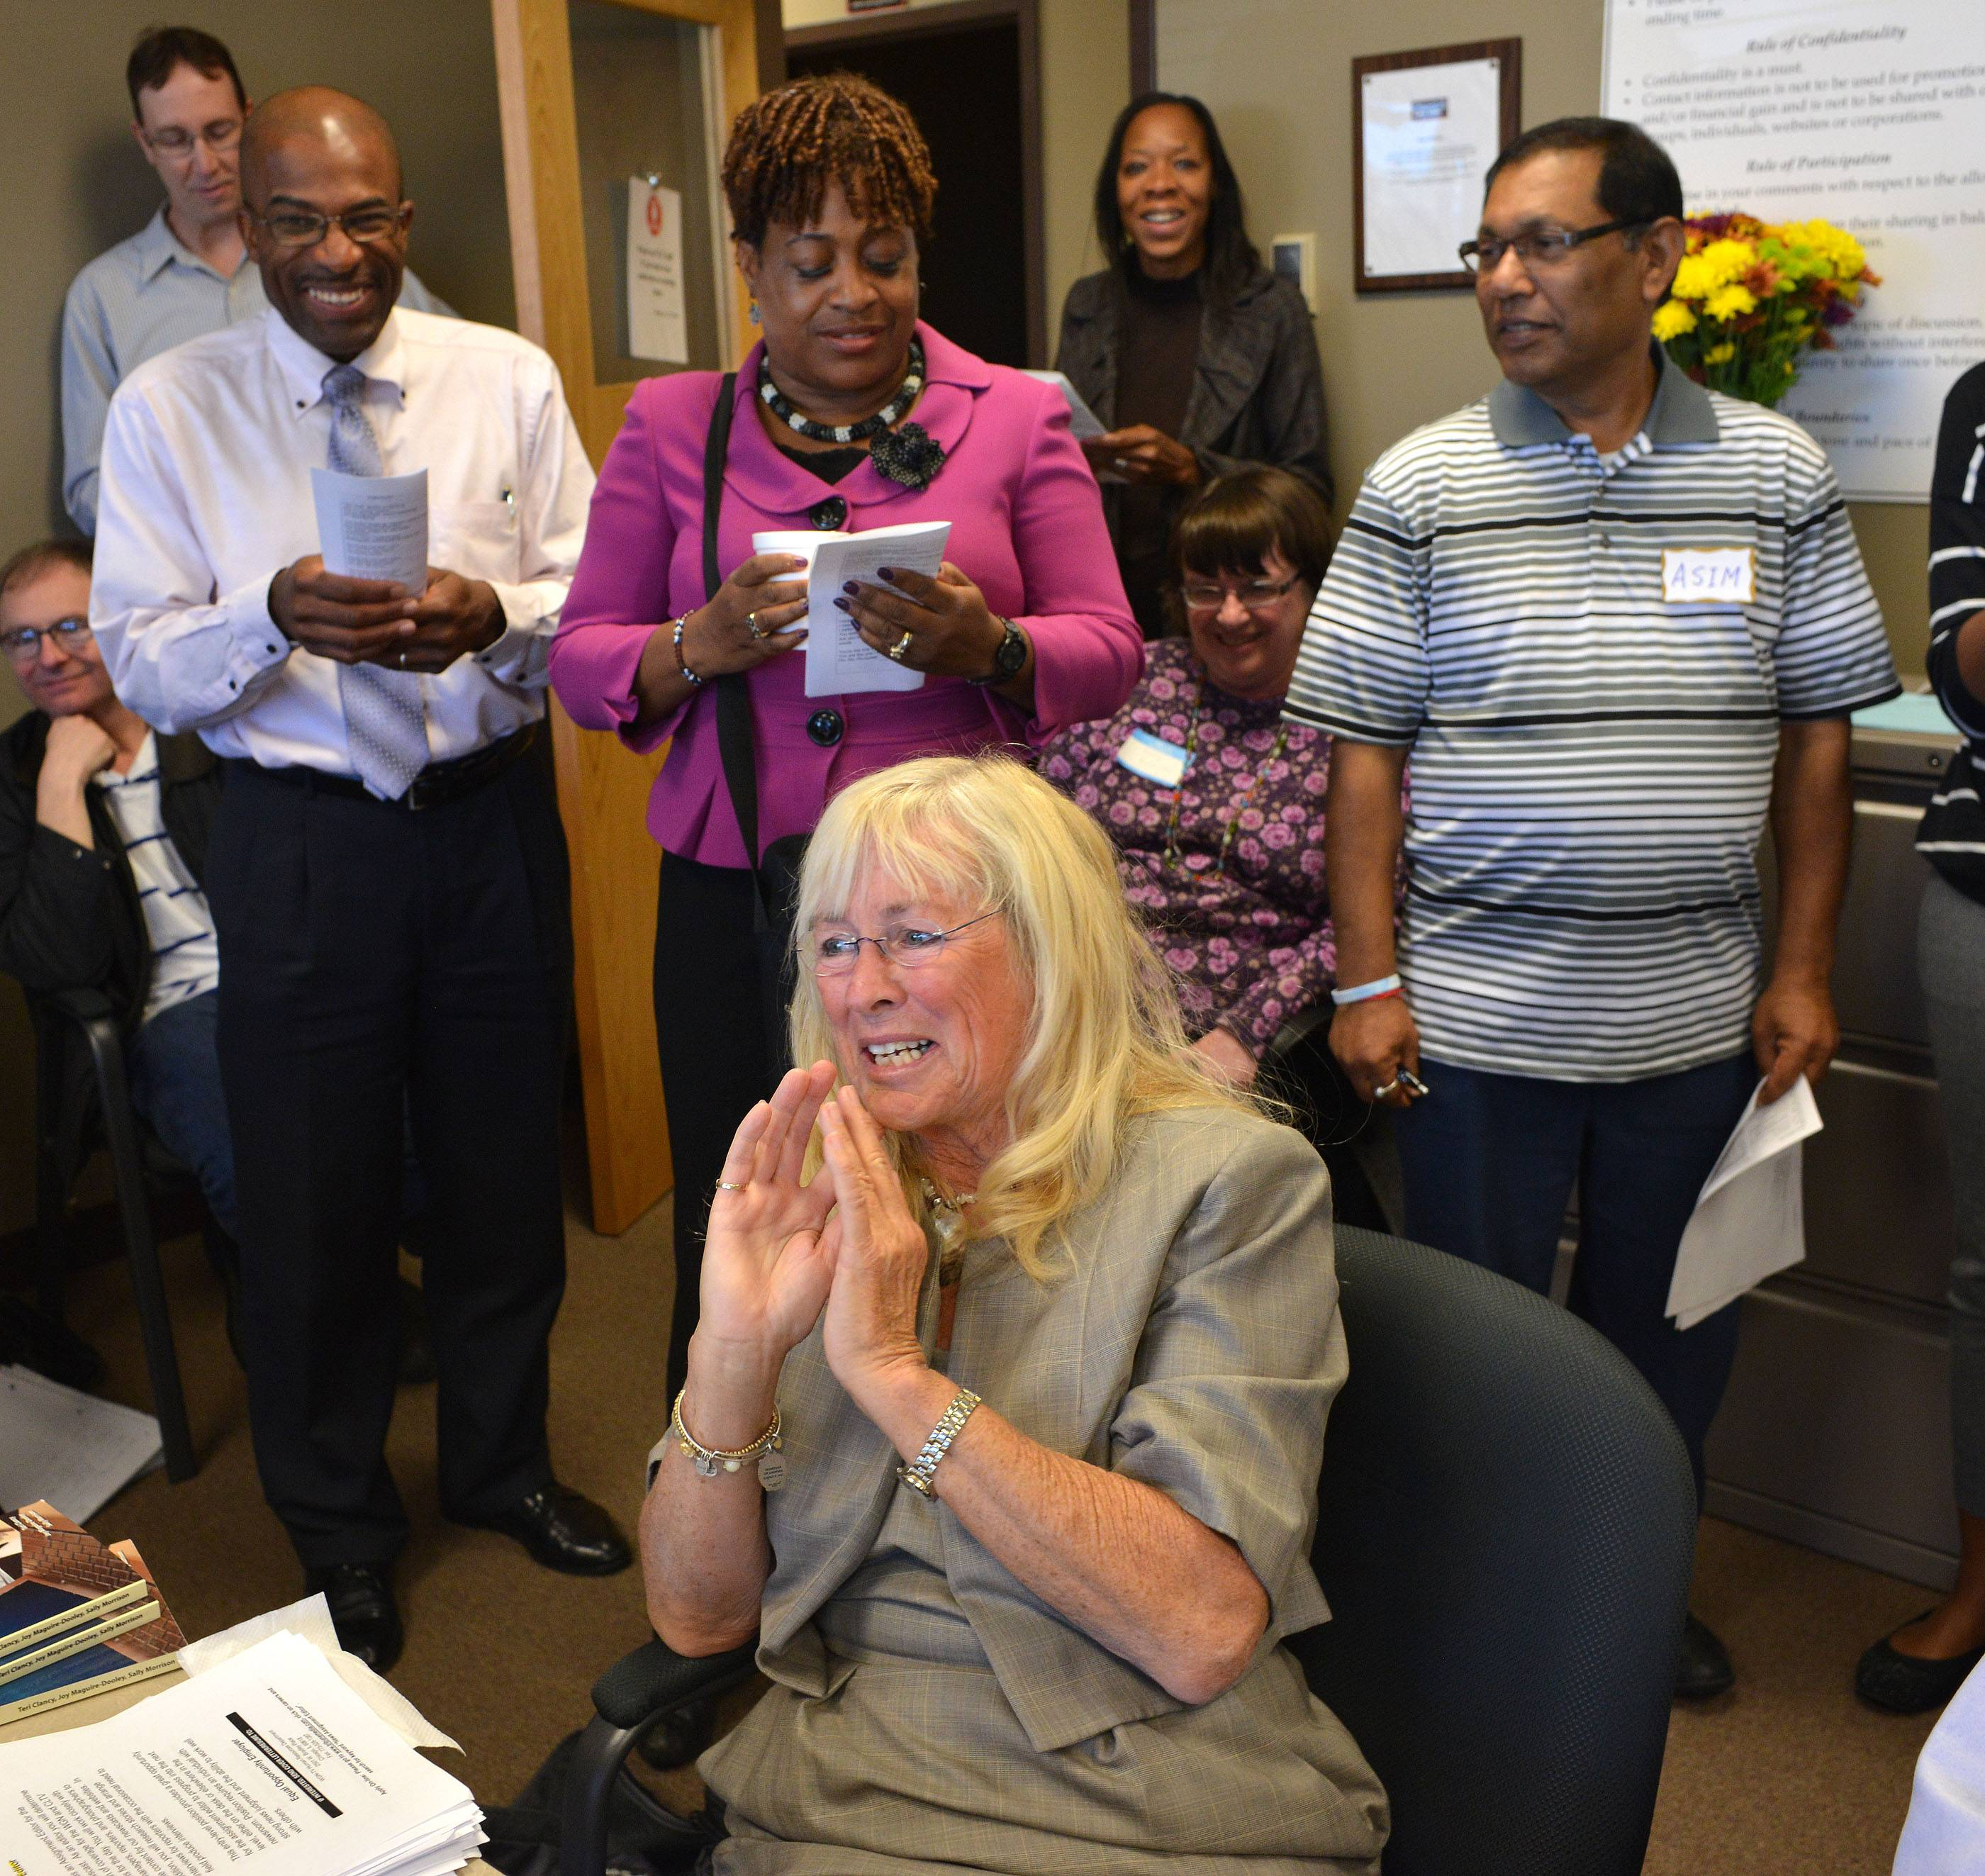 Joy Maguire Dooley, foreground, gets a surprise 'flash mob' send-off at her last Job Club meeting Wednesday. She is retiring after nearly 20 years of leading the Job Club at the Community Career Center in Naperville.